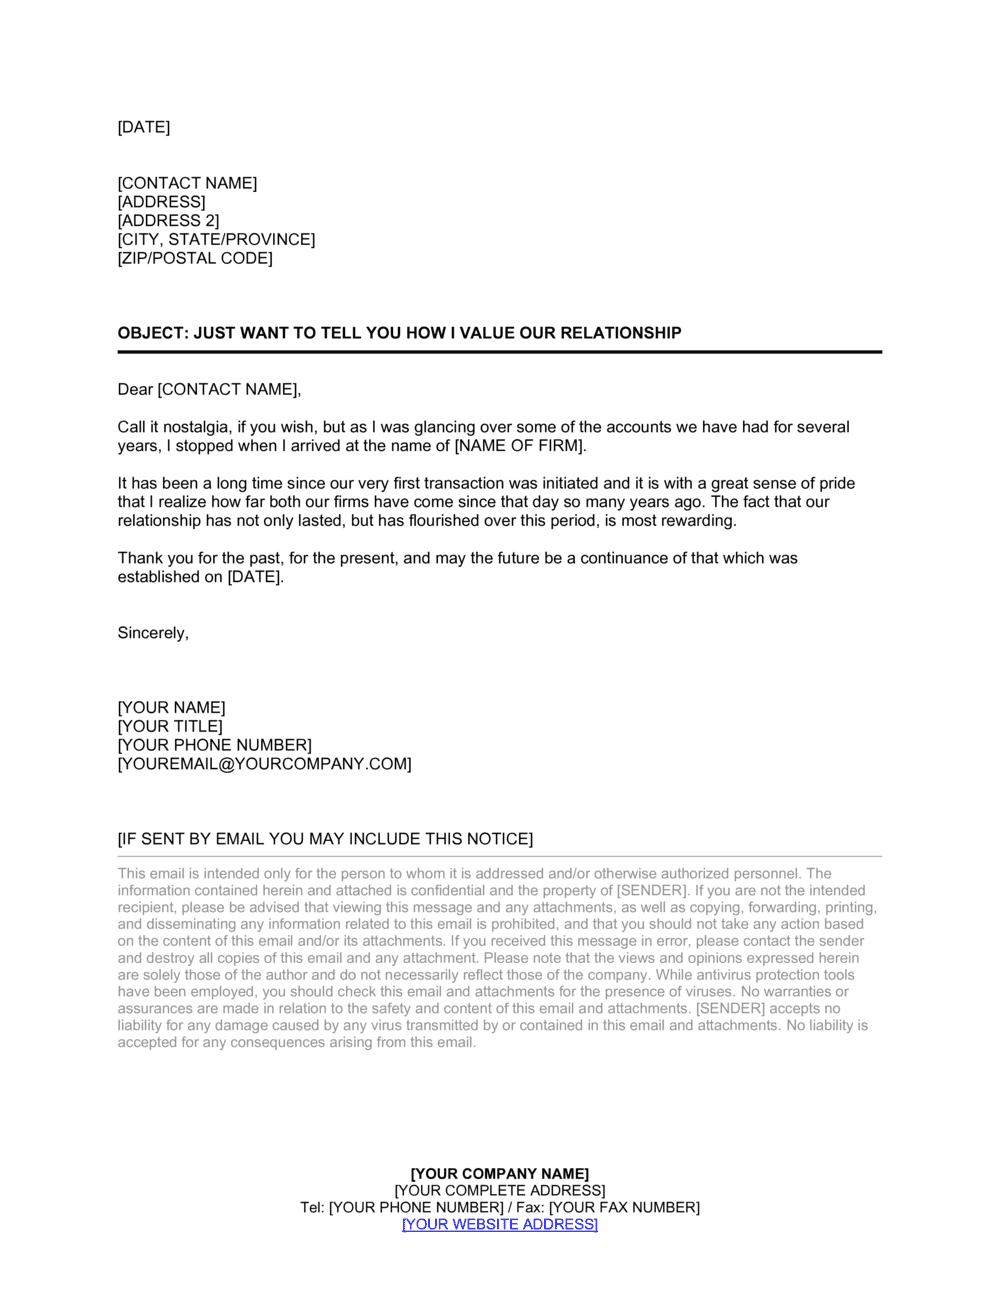 Business-in-a-Box's Spontaneous Good Customer Relations Letter Template